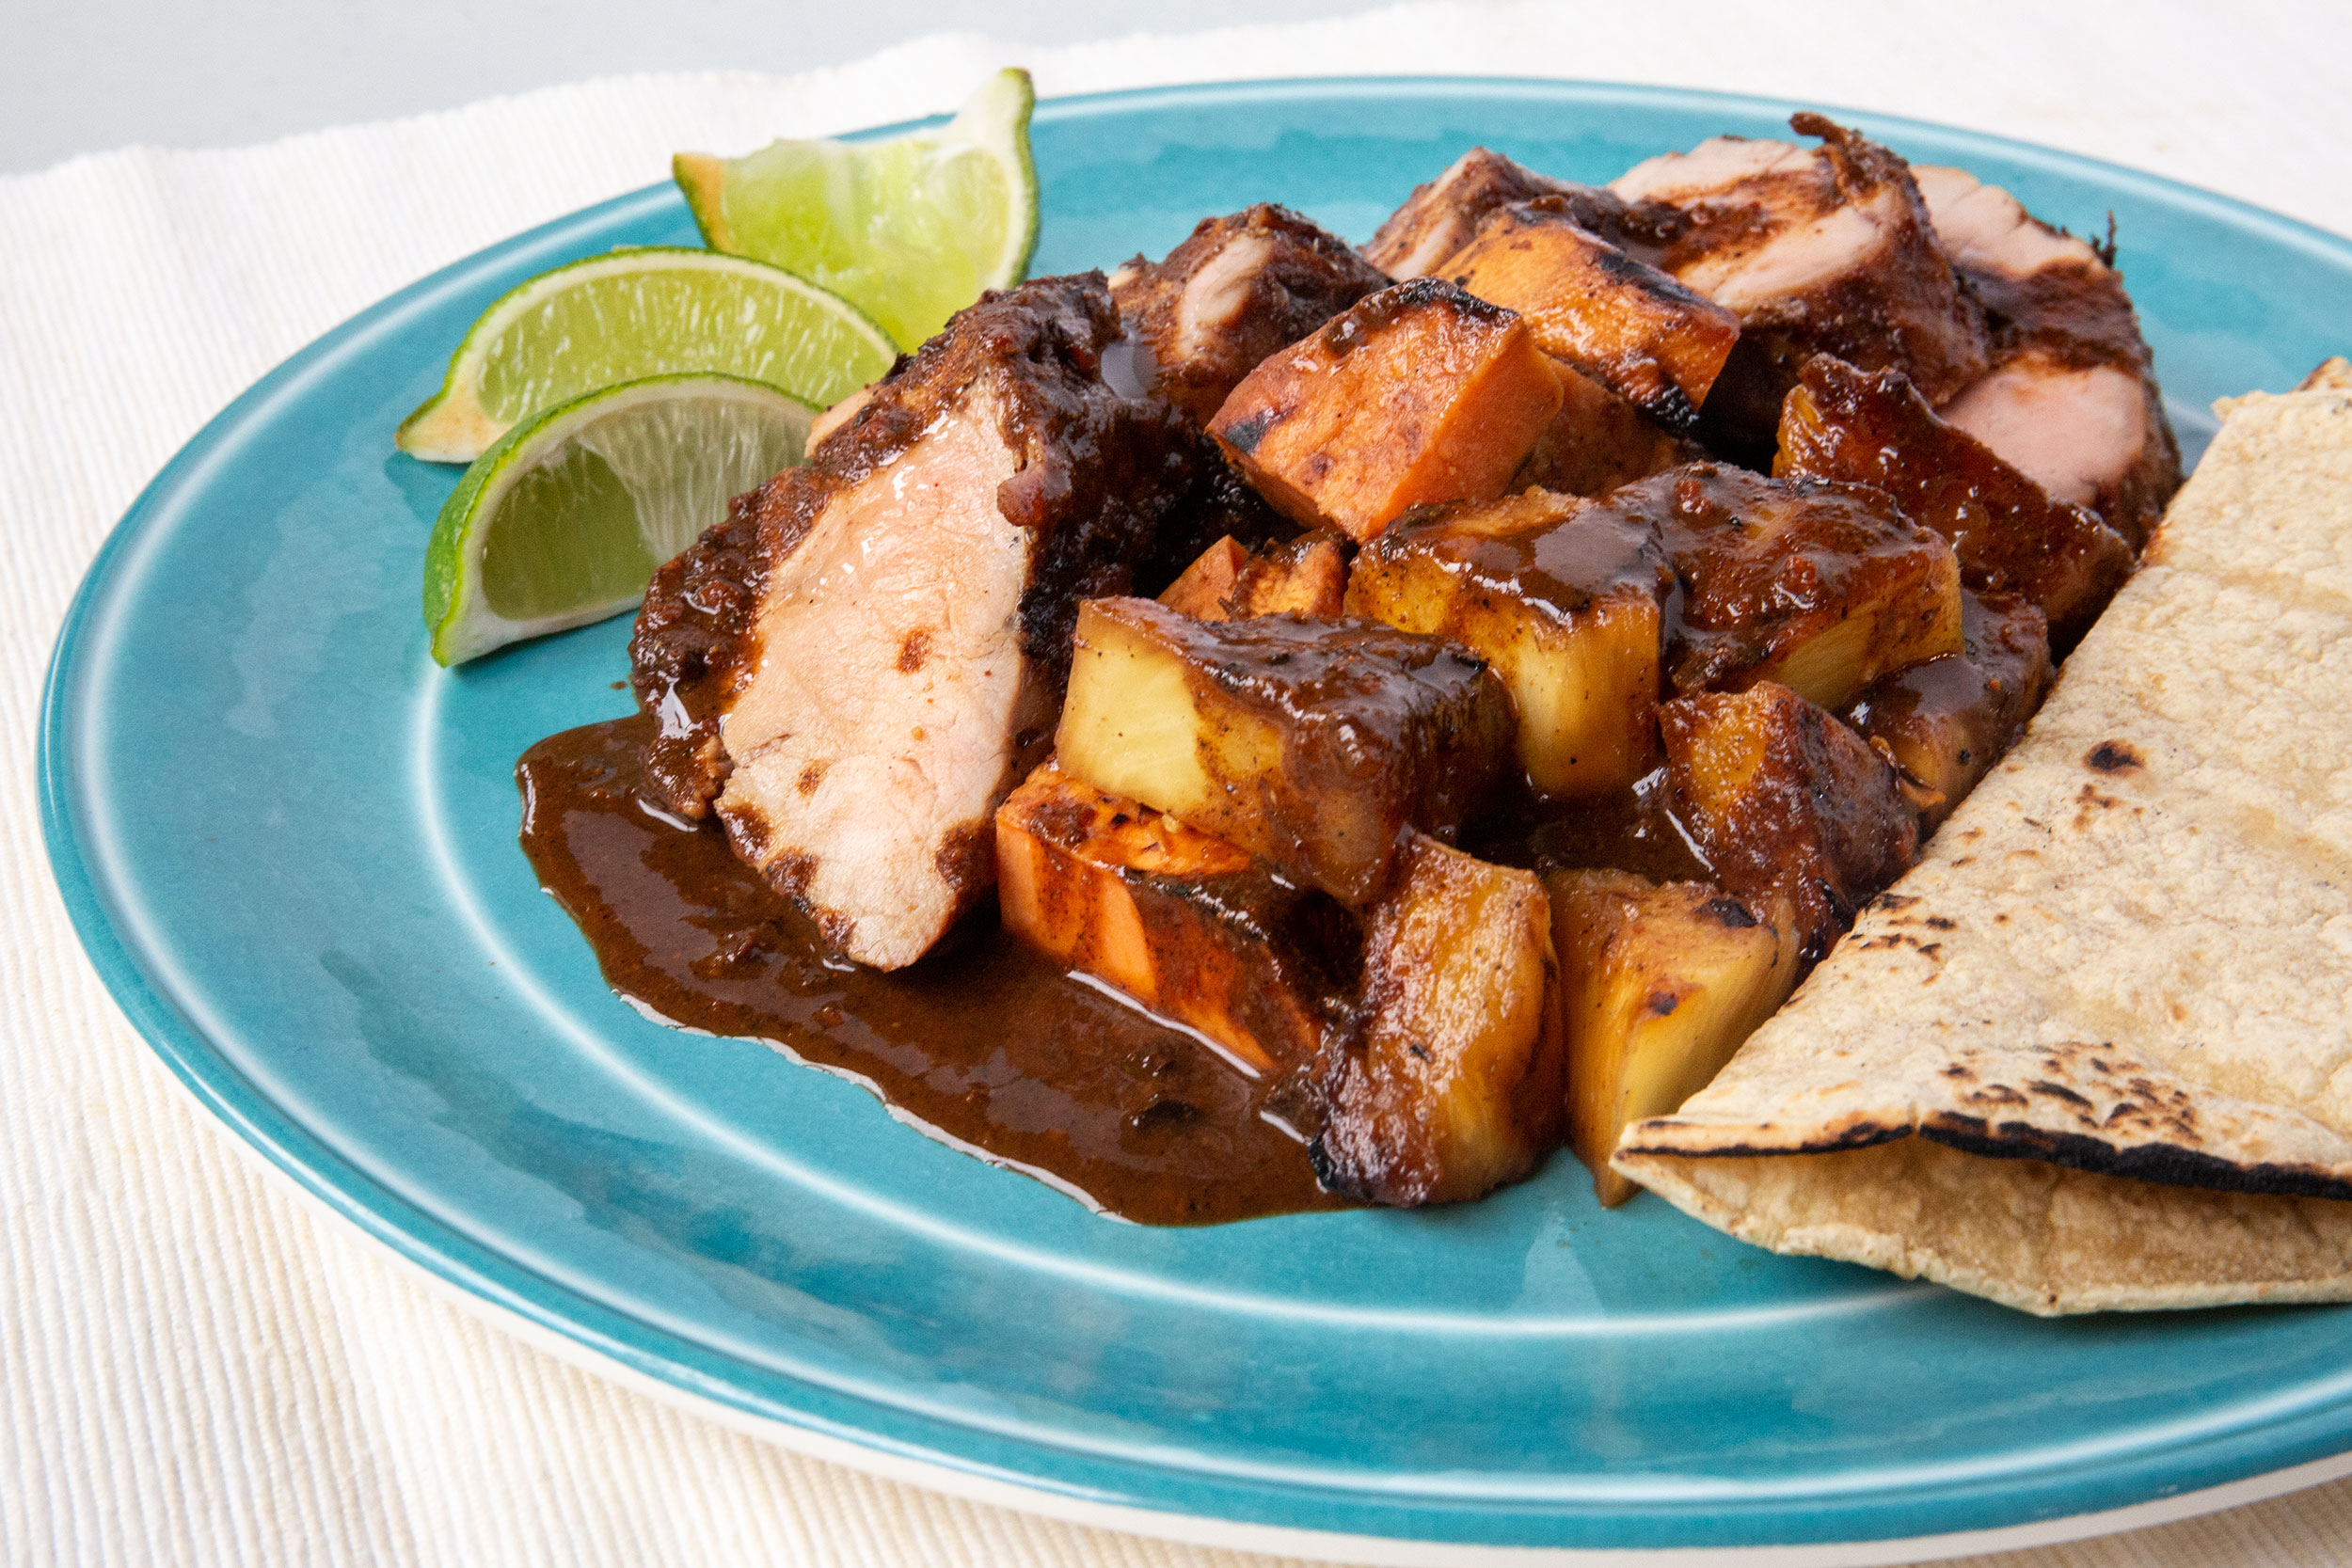 Grilled Pork, Yams & Pineapple with Machamanteles Mole